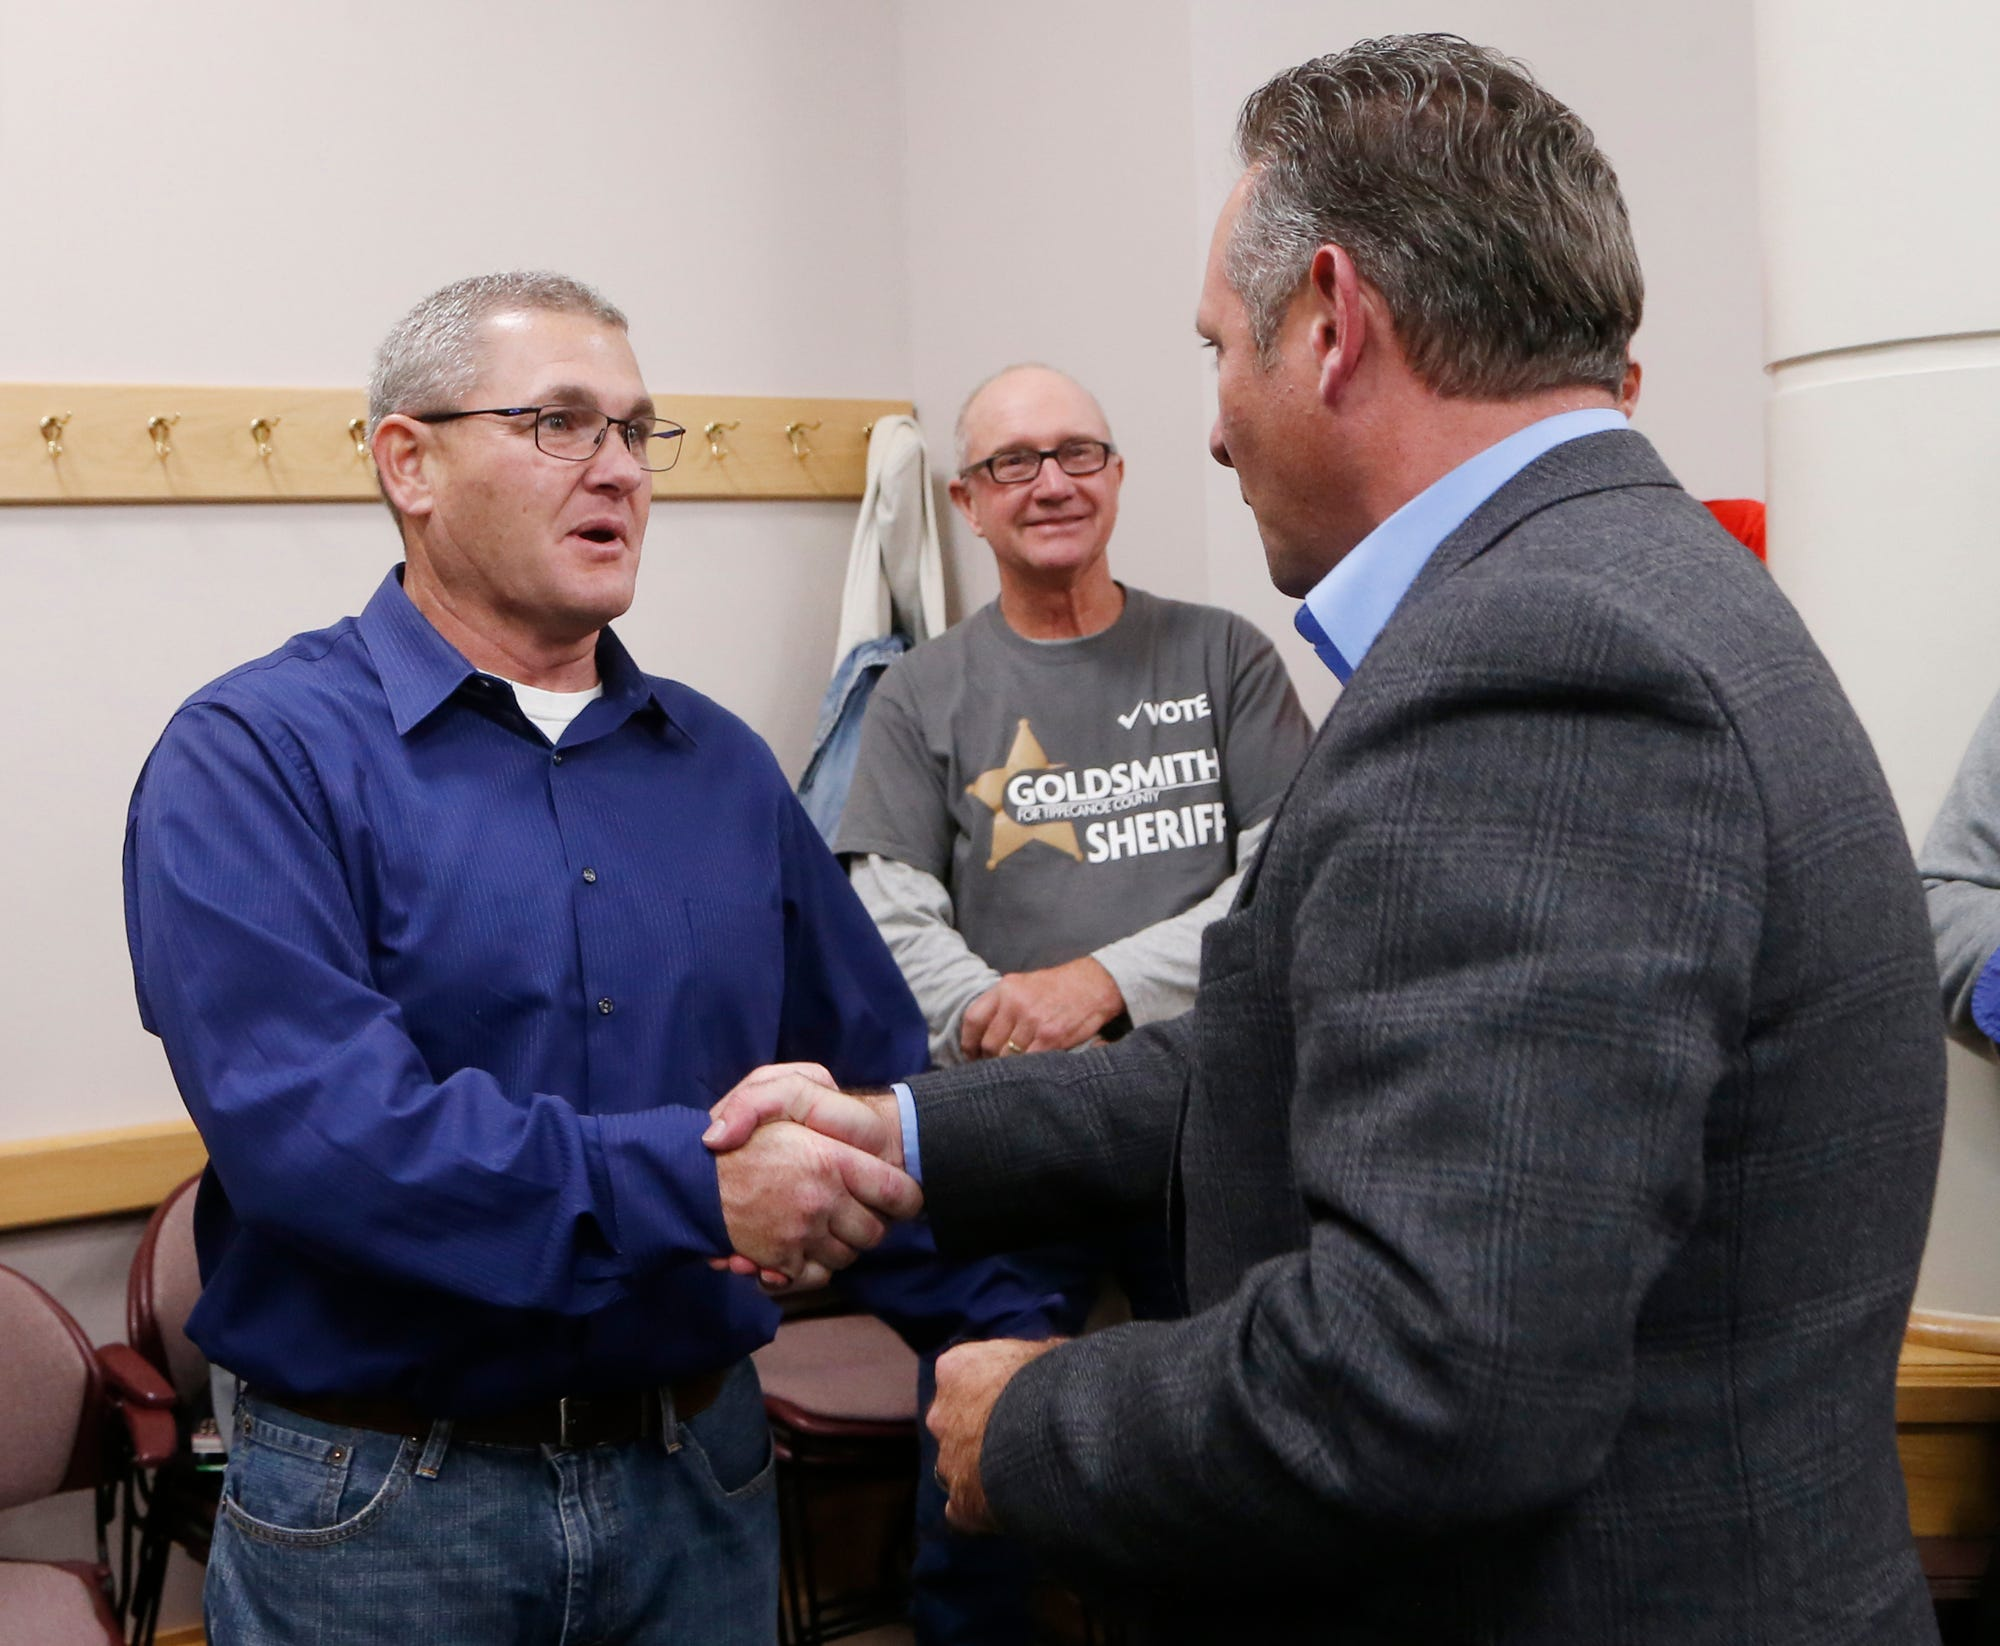 Bob Goldsmith, left, and Jason Dombkowski shake hands at the County Office Building Tuesday, November 6, 2018, in Lafayette. Goldsmith, a Democrat, narrowly defeated Republican Dombkowski in the race for Tippecaoe County Sheriff.